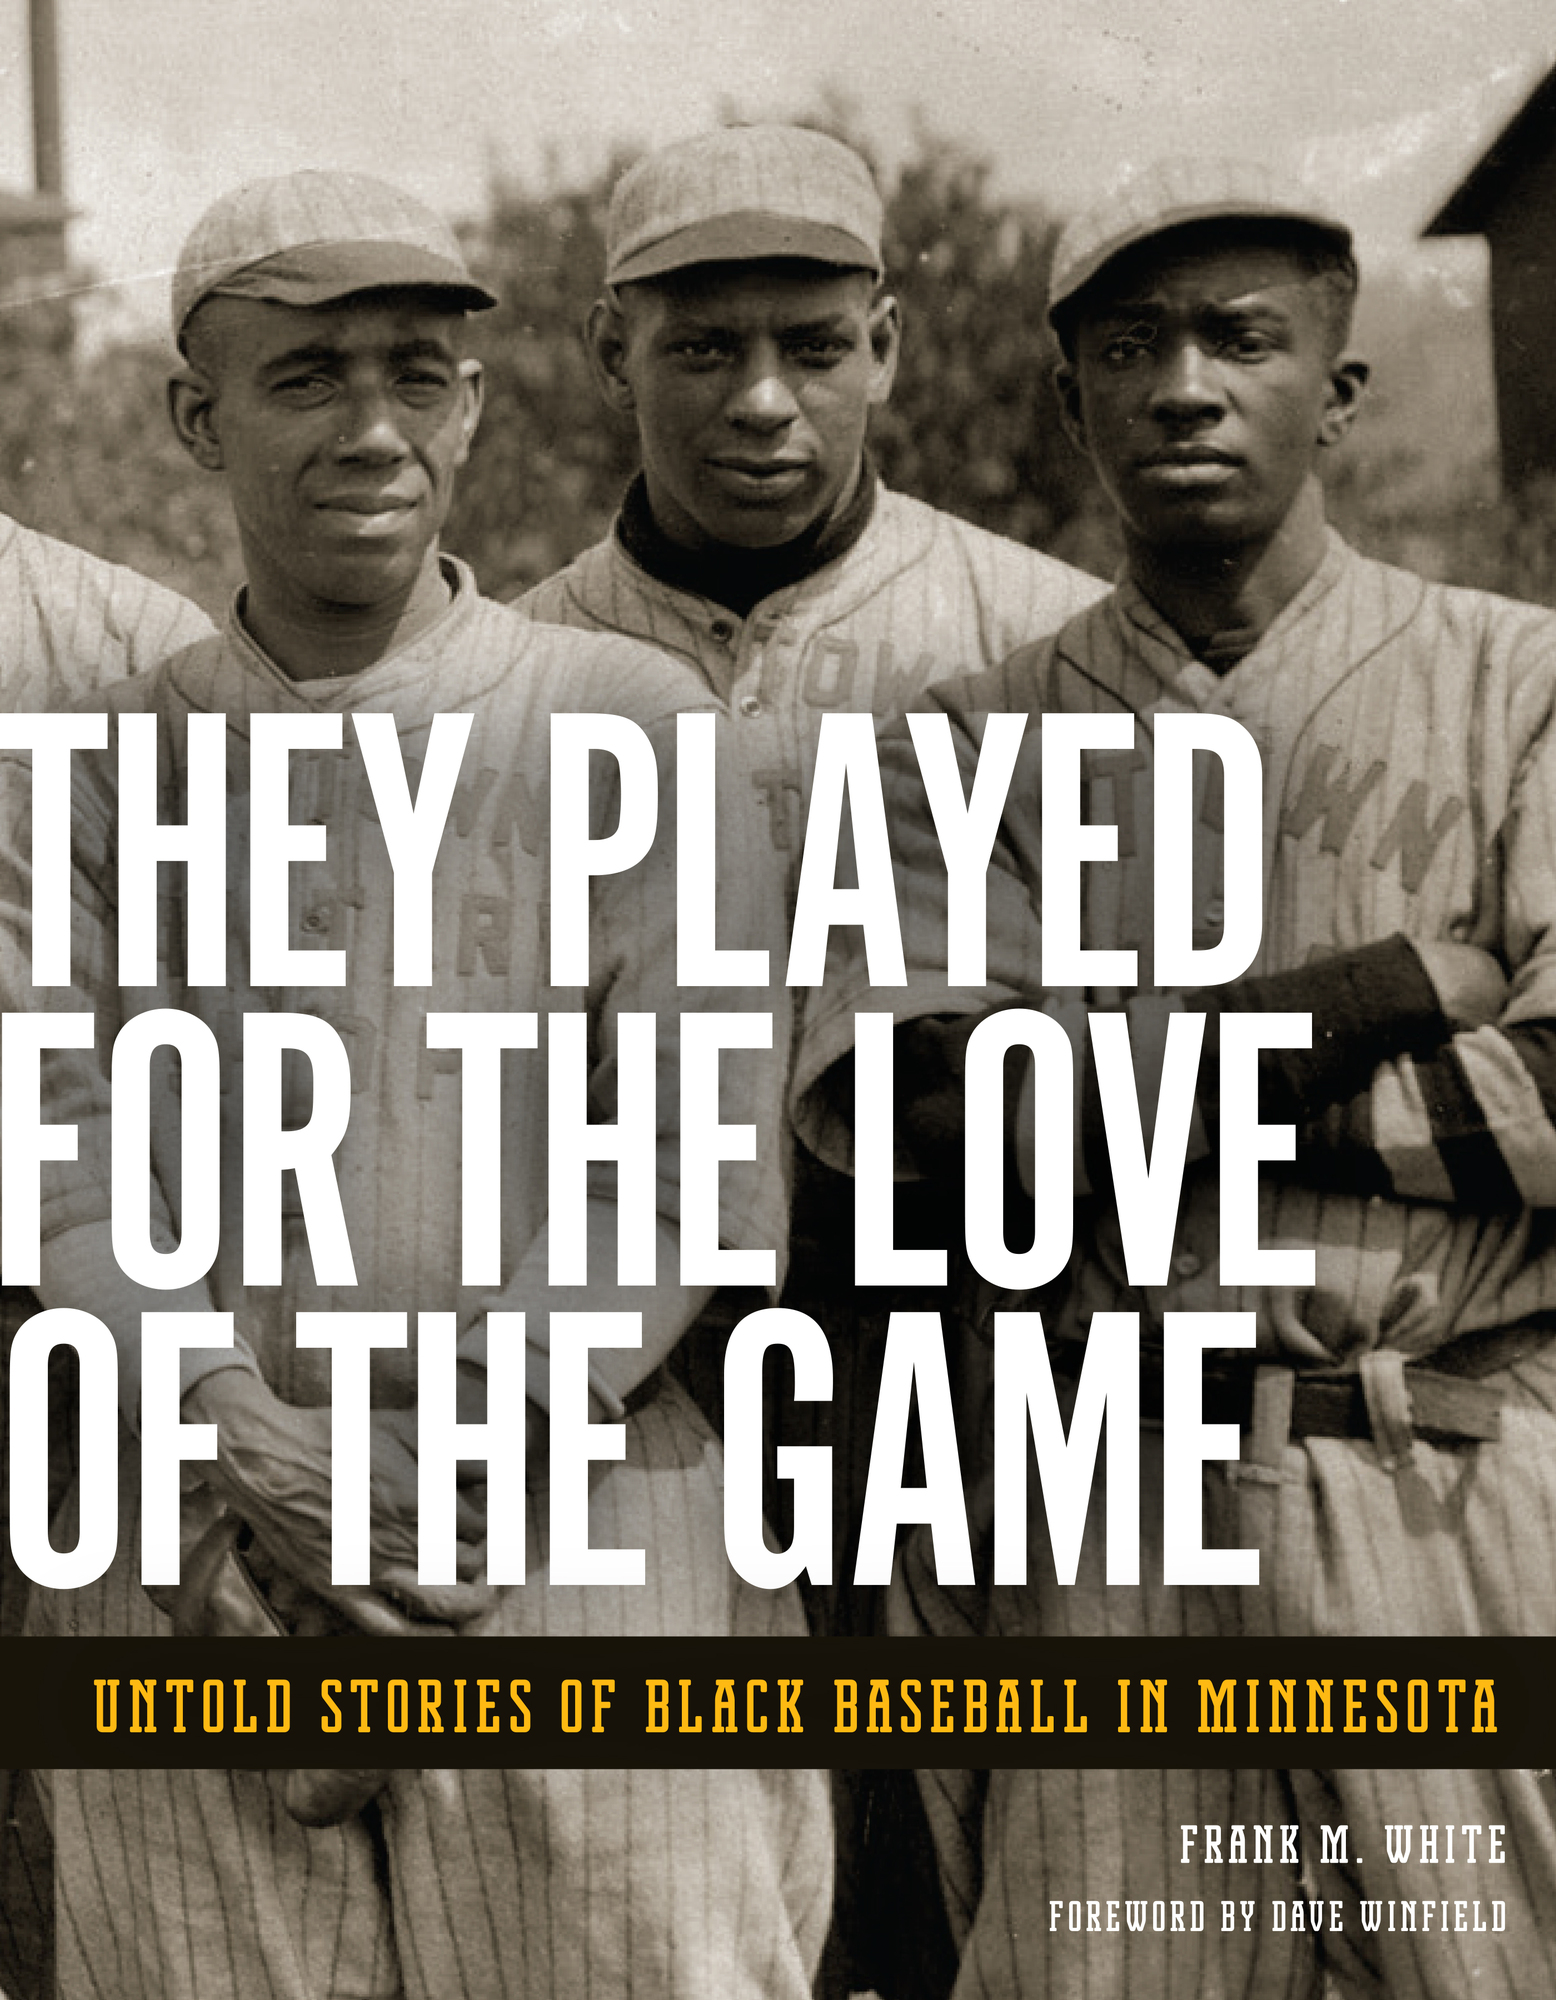 They Played for the Love of the Game - a book review